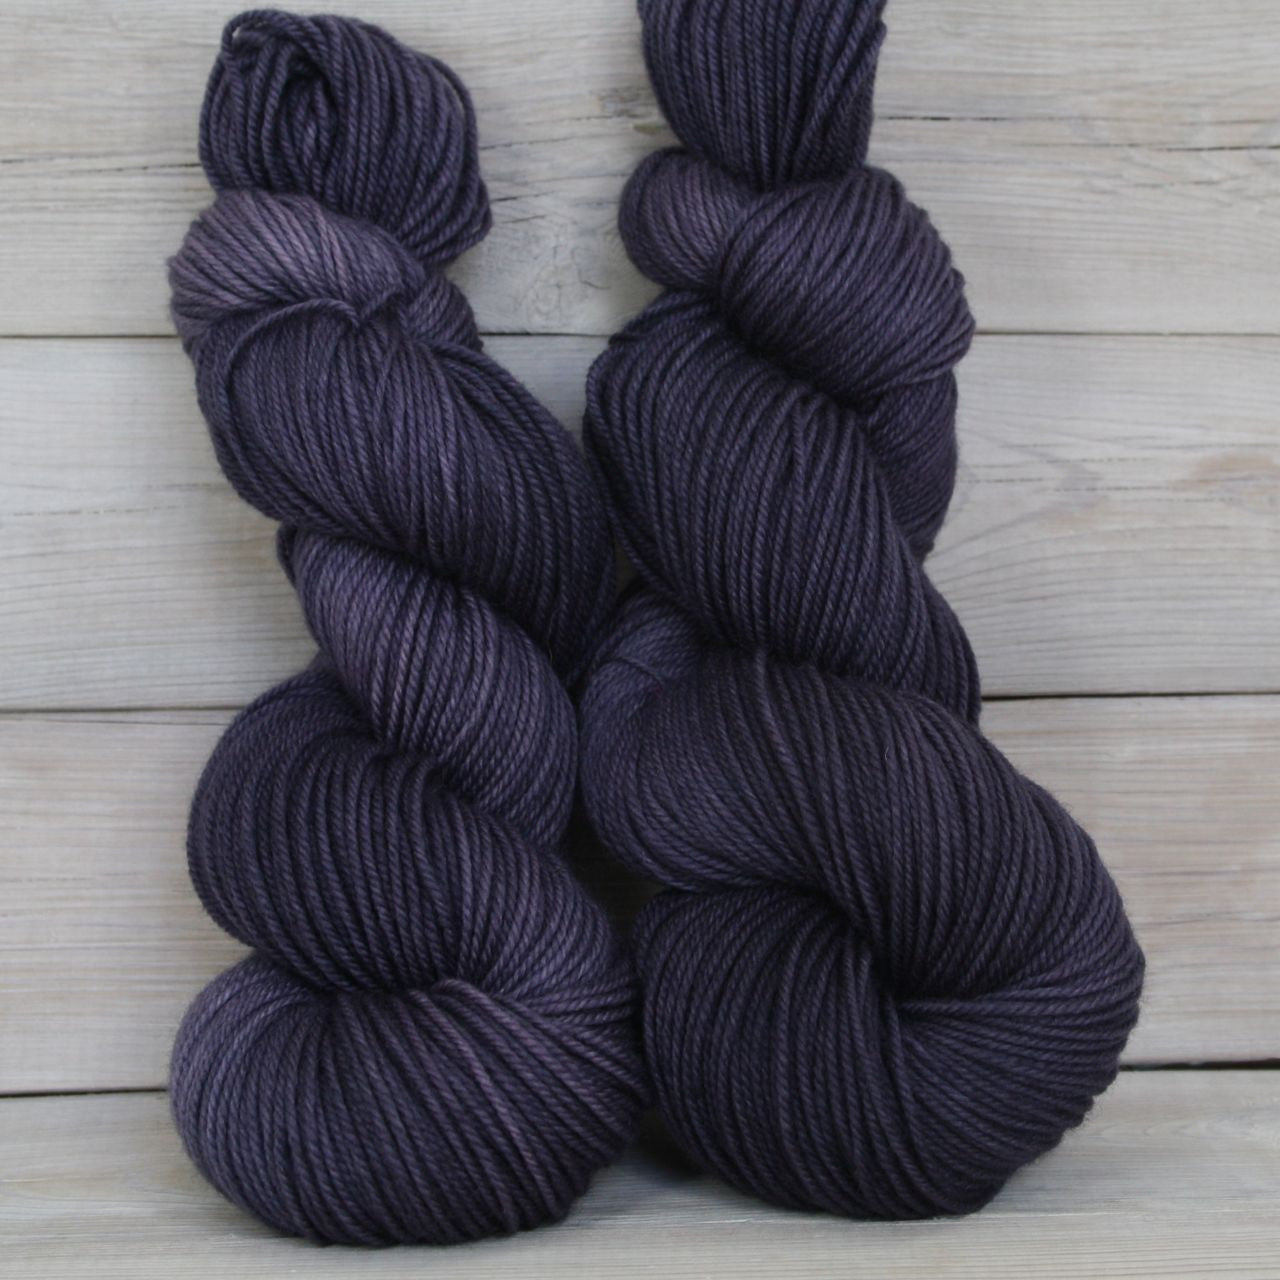 Zeta Yarn | Colorway: Enchanted